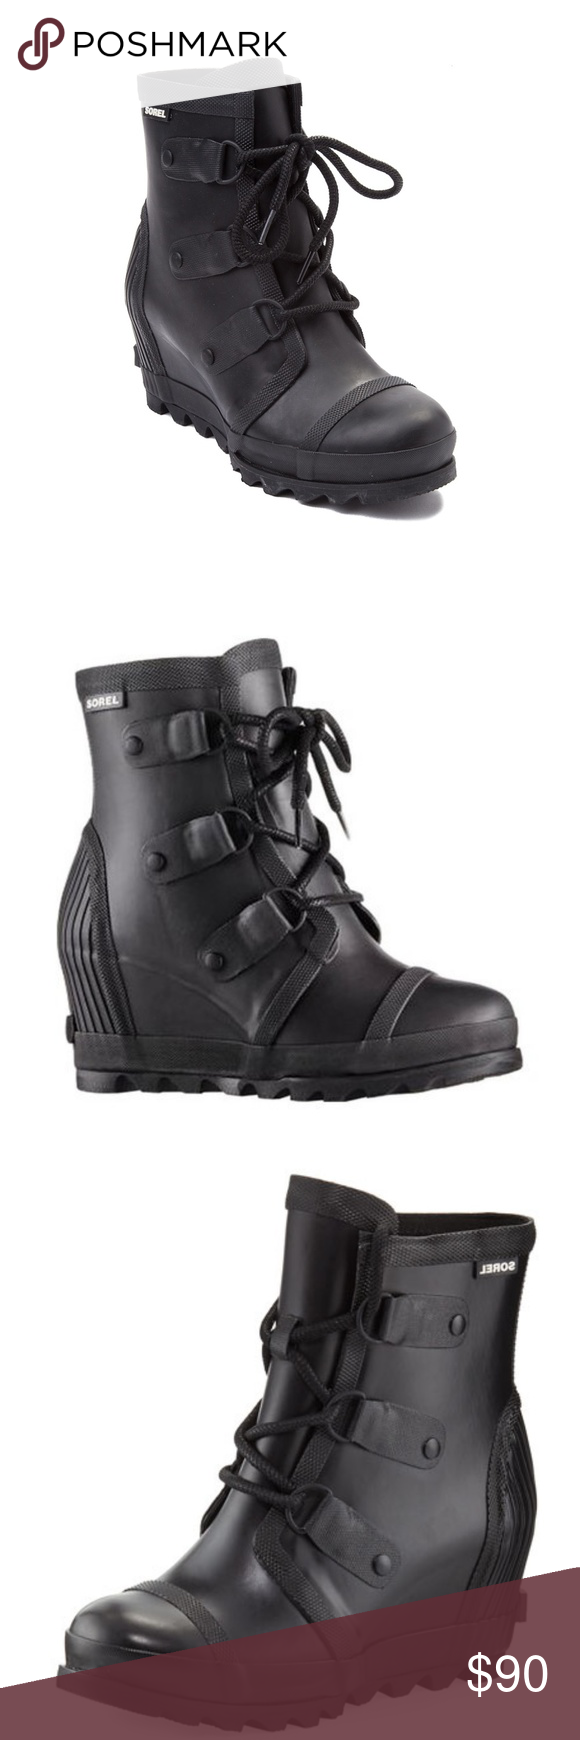 3b14d69a4b3 Sorel Black Matte Women s Joan Rain Wedge Boots Sorel Black Matte Women s  Joan Rain Wedge Boots